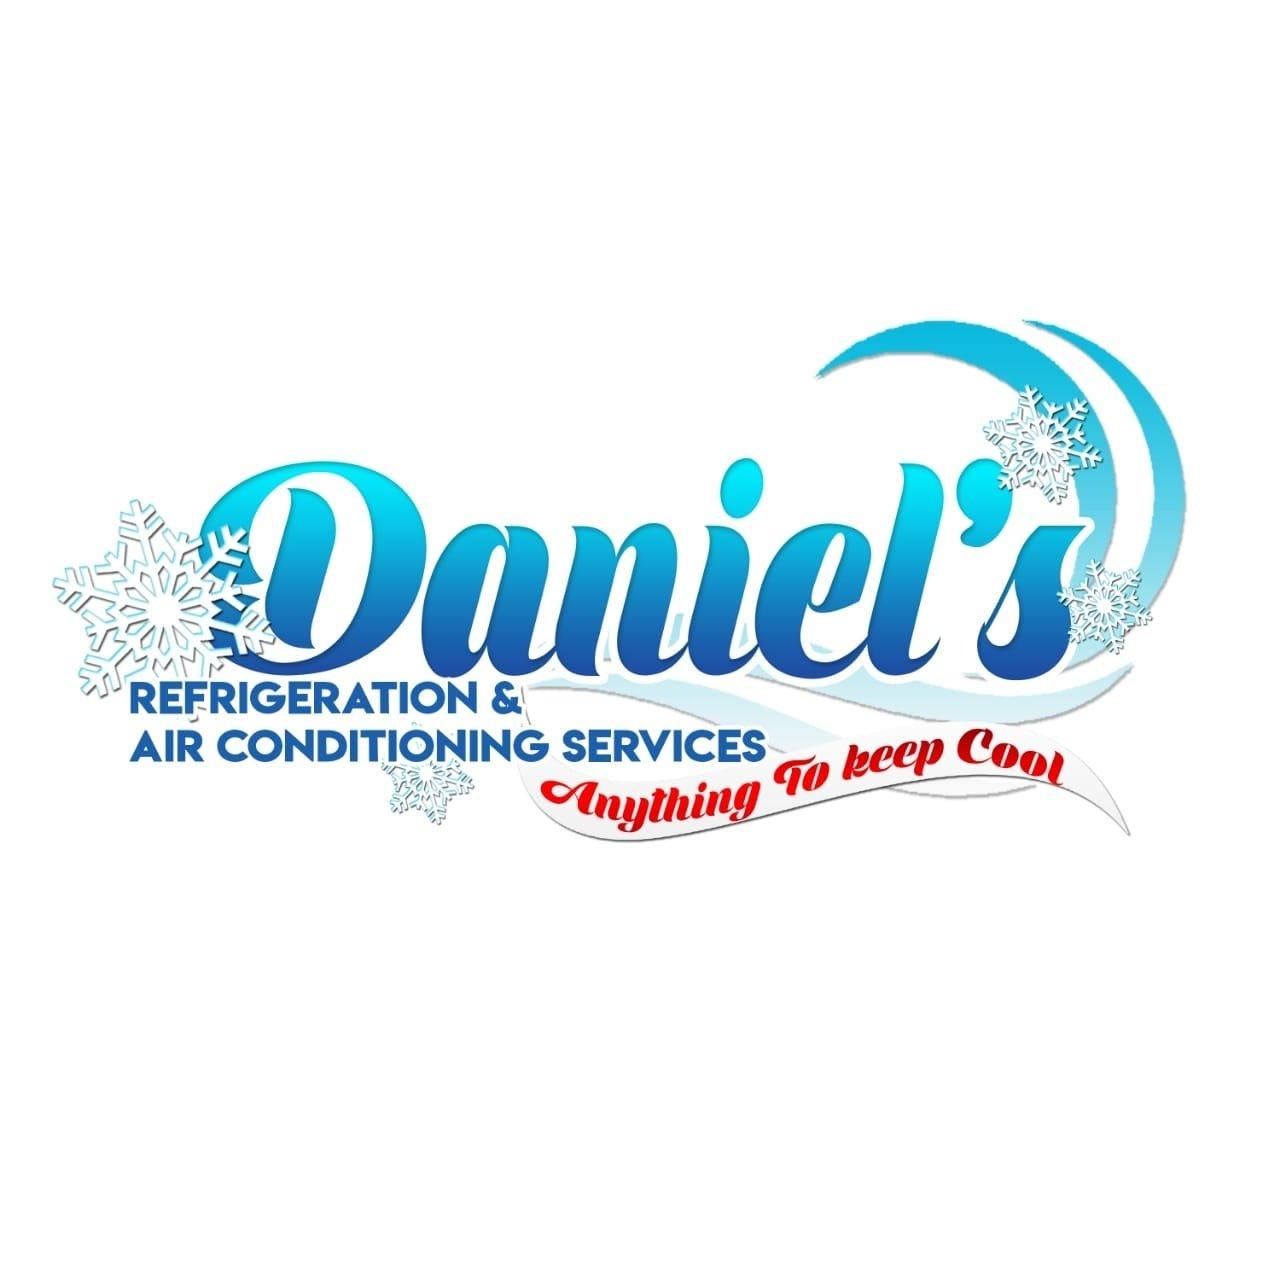 Daniel's Refrigeration & Air Conditioning Services